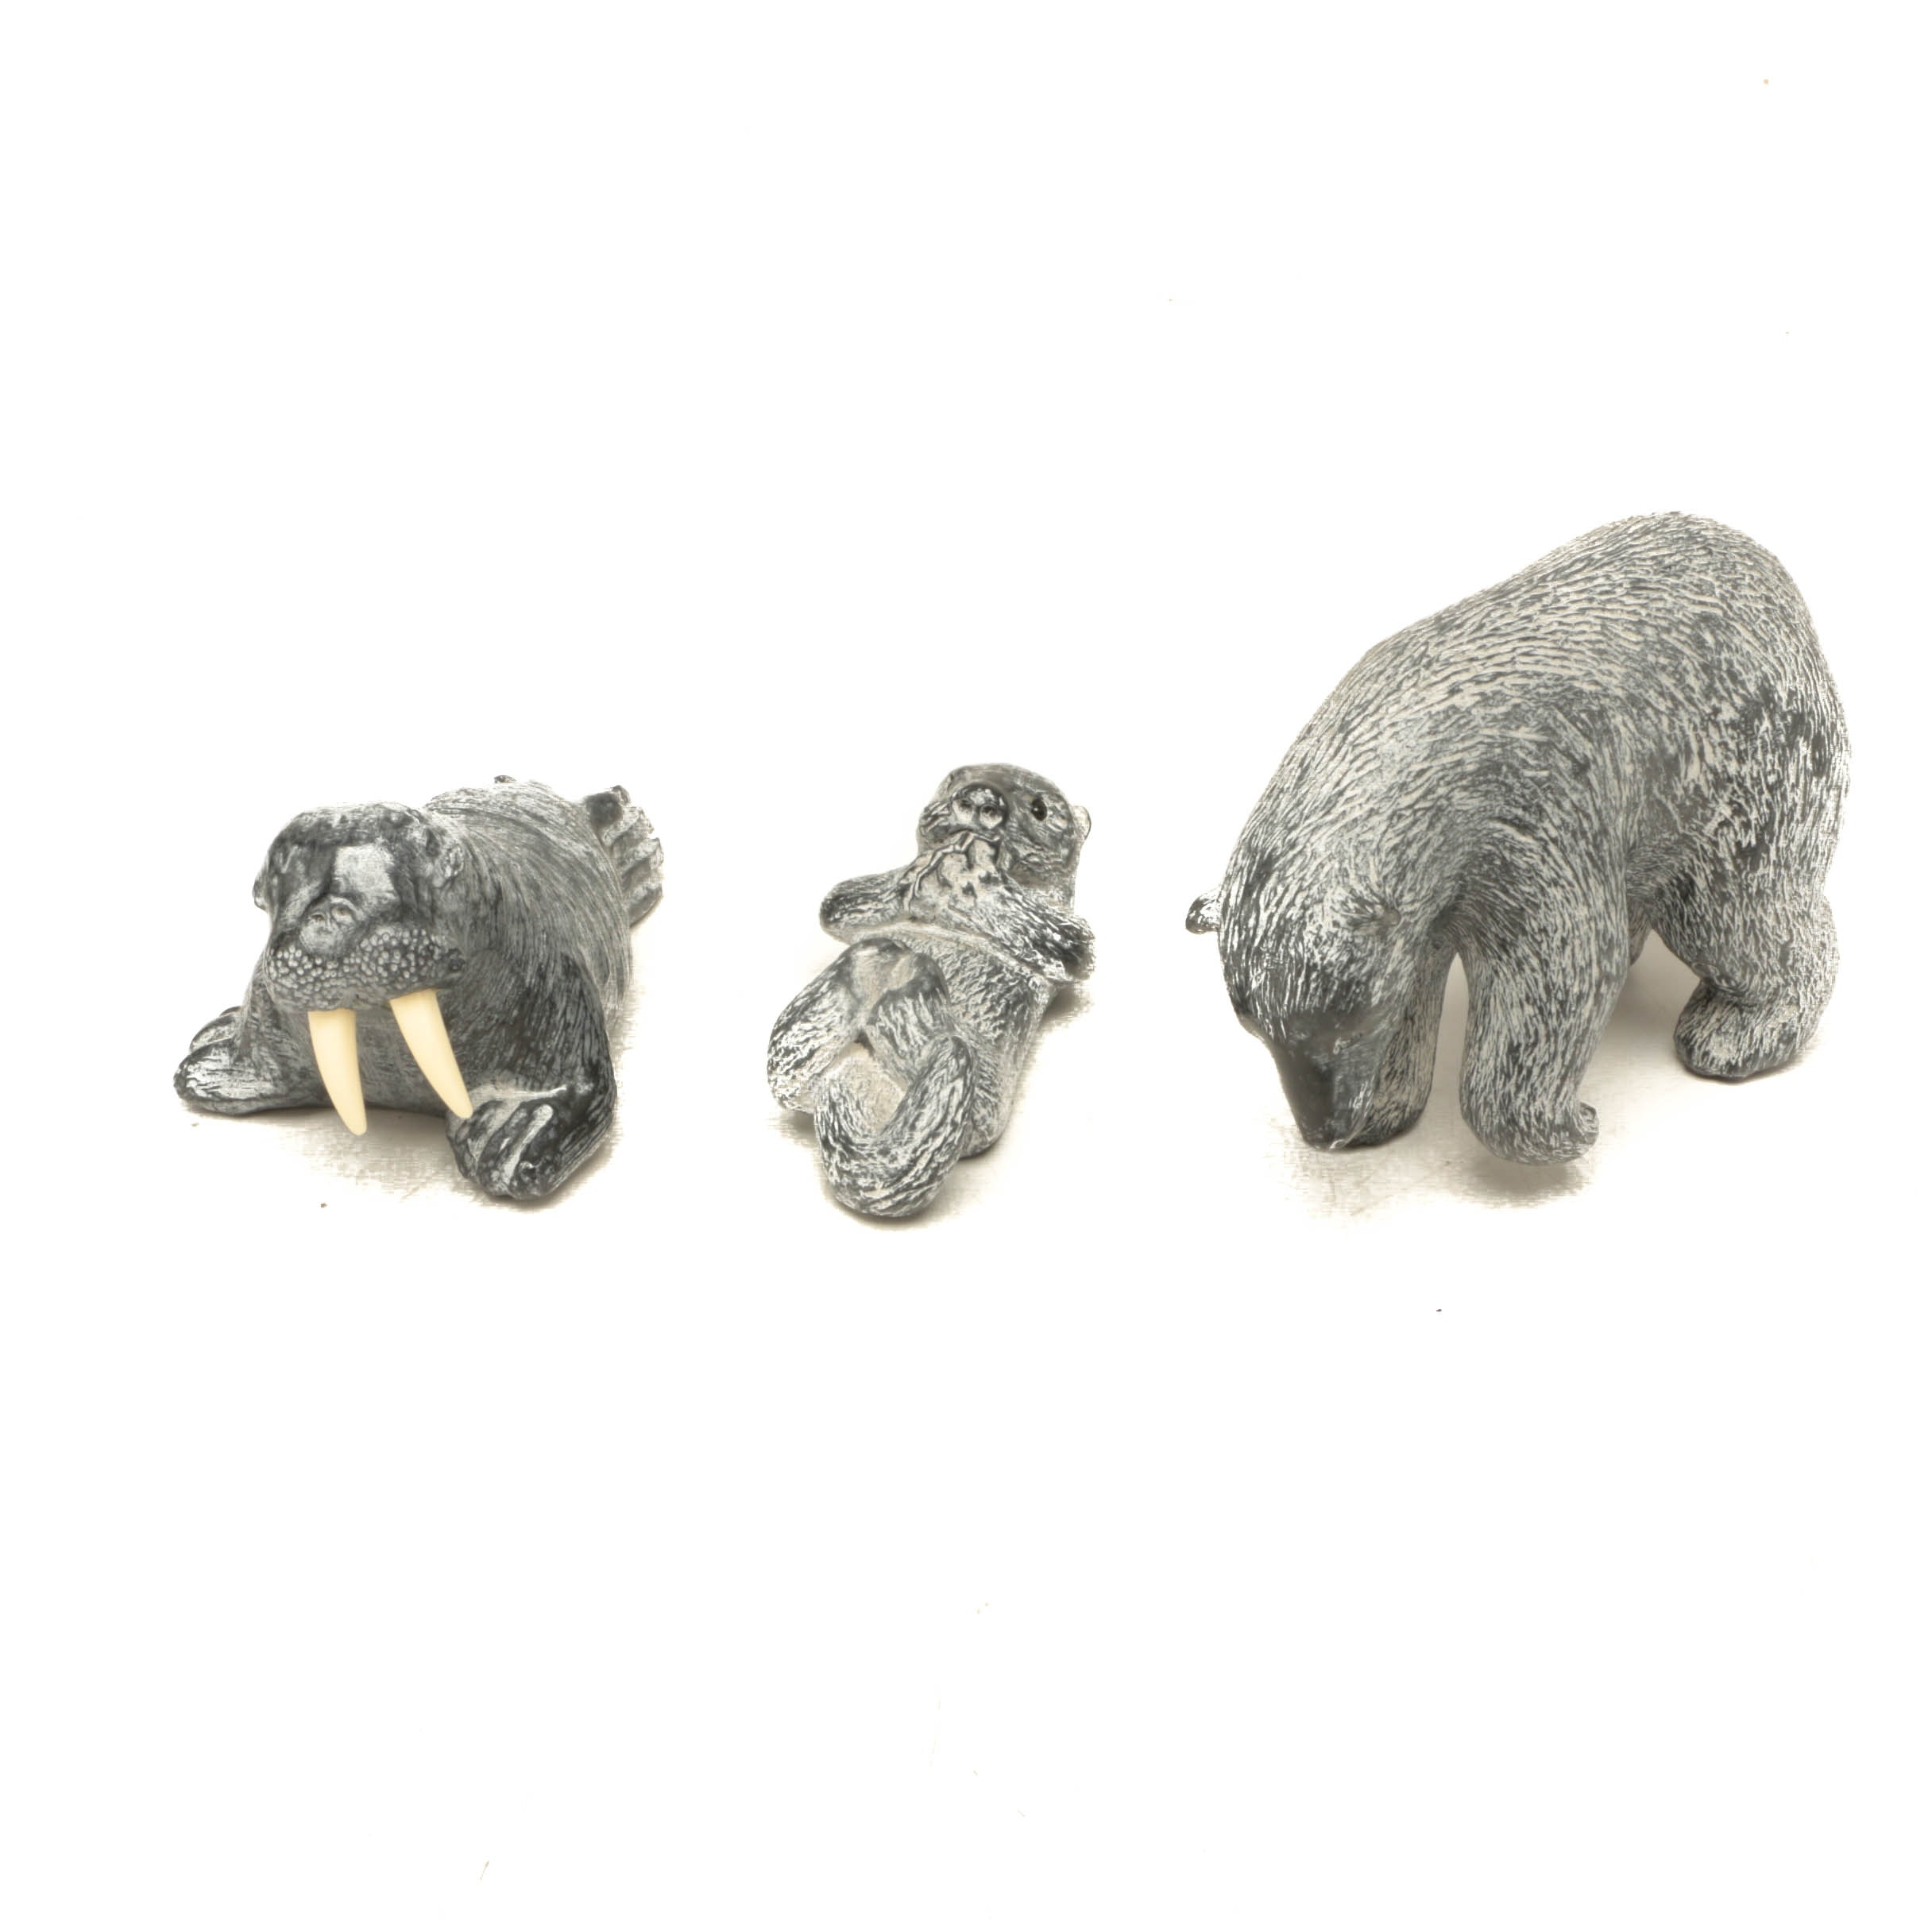 Soapstone Inuit Style Figures from Canada